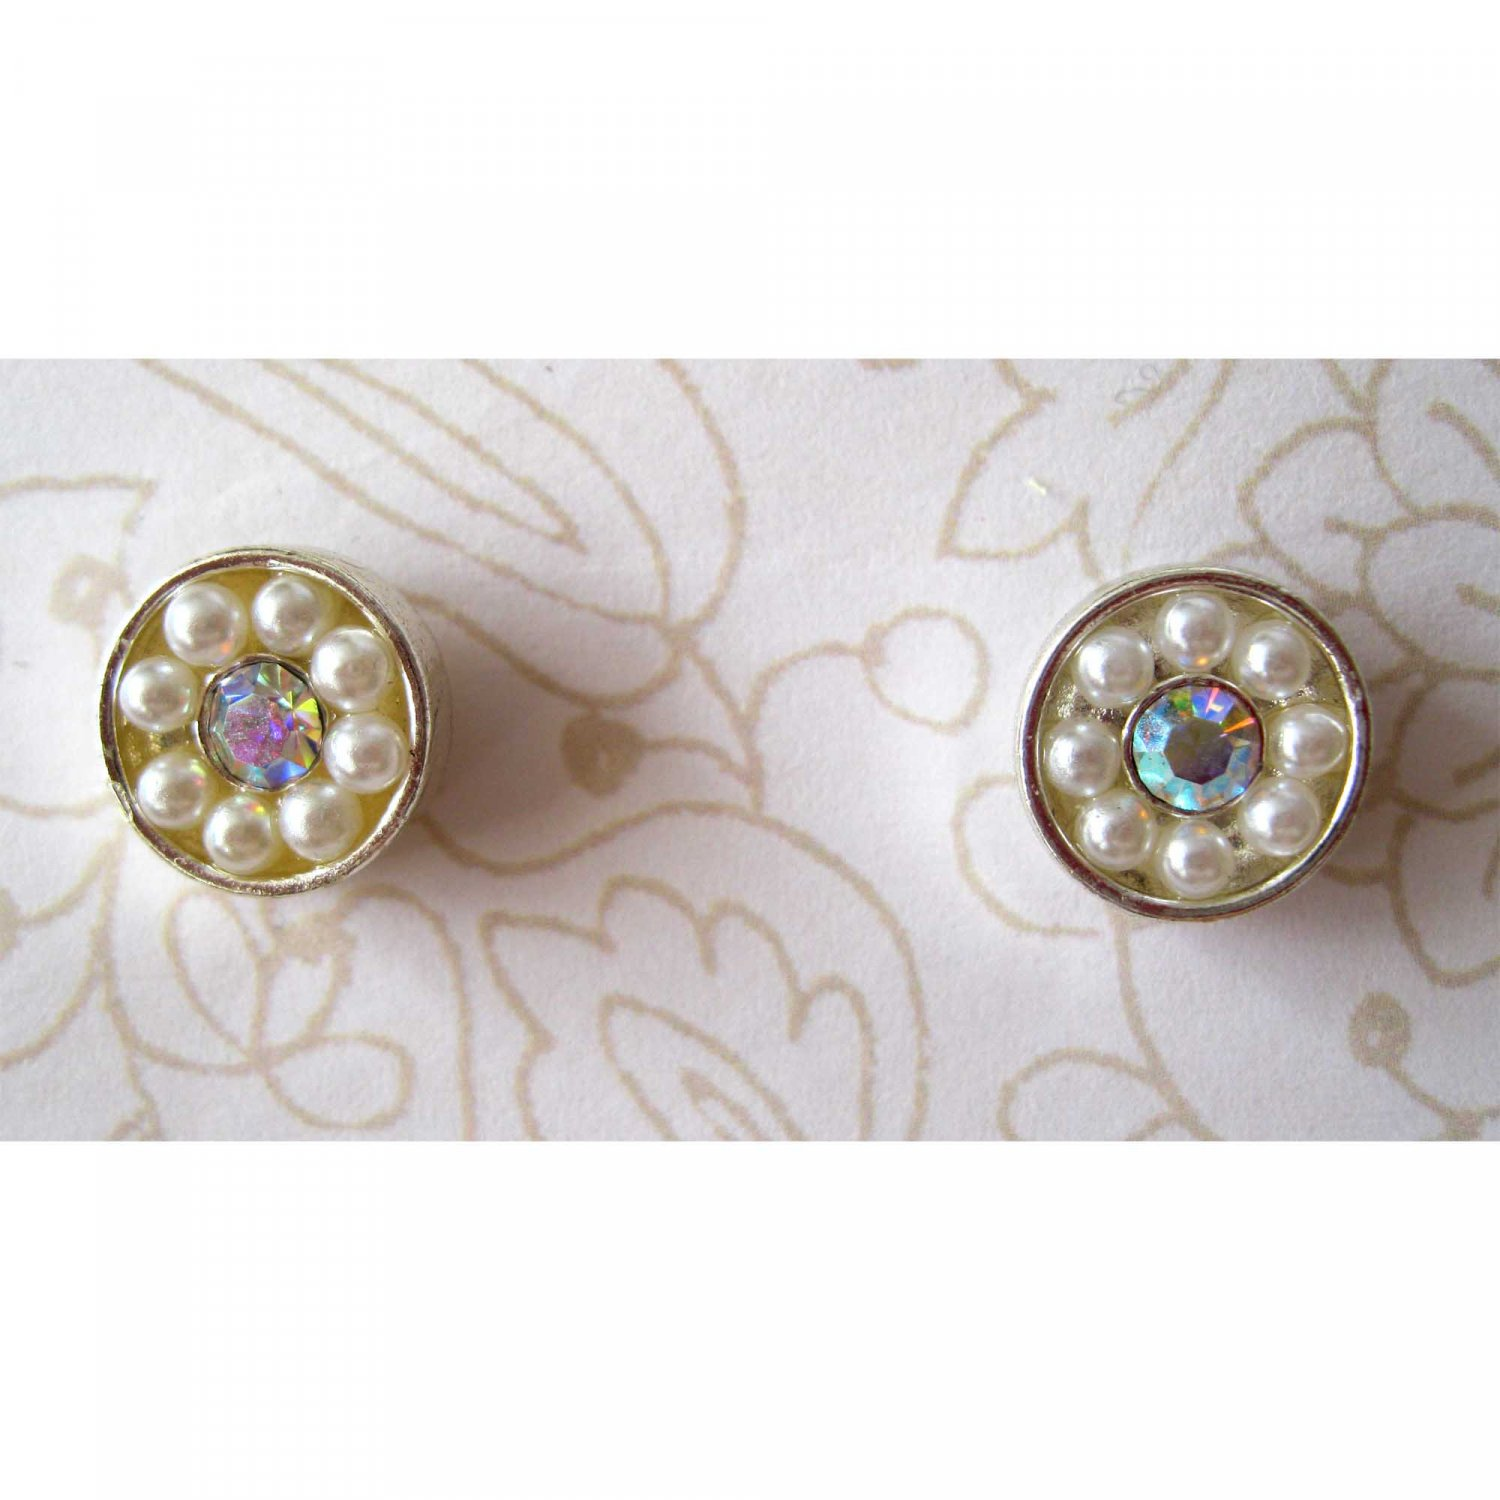 Pearl silver button earrings with aurora borealis crystal center {1513e}